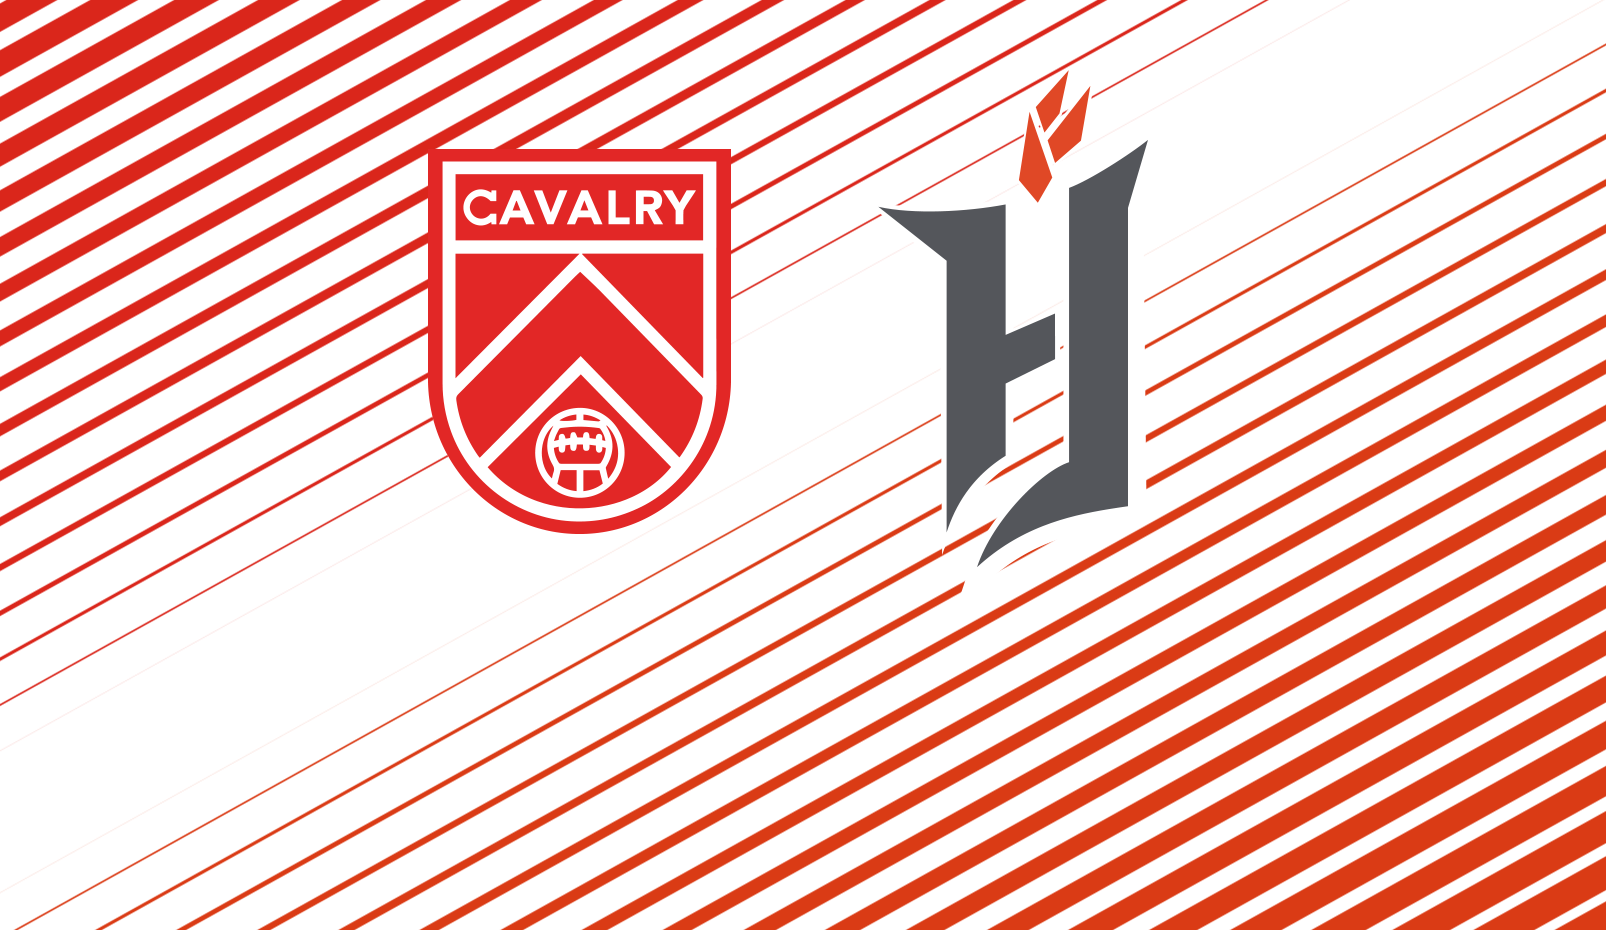 PREVIEW: Cavalry FC vs. Forge FC - Match #90